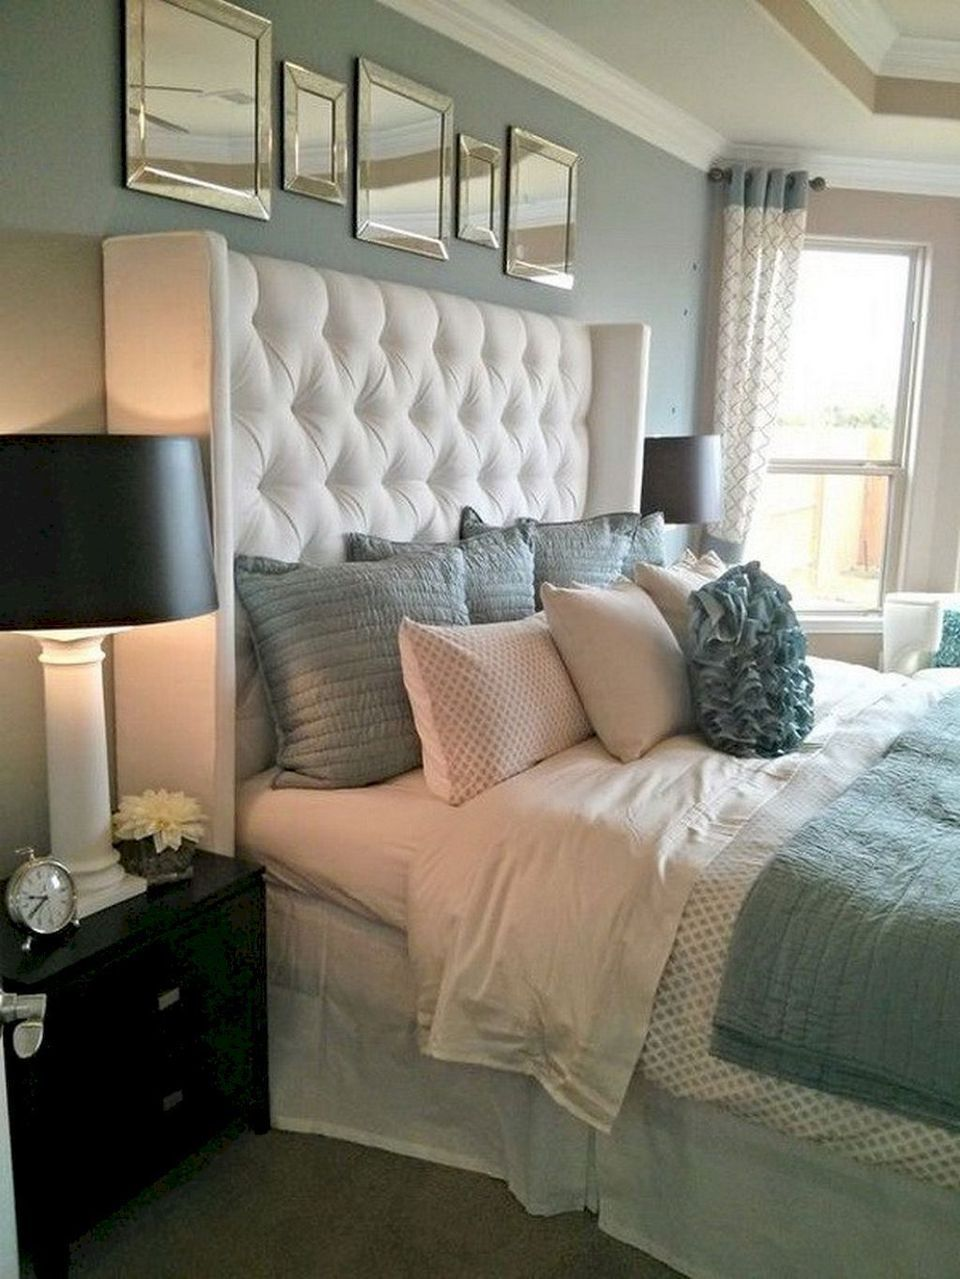 Small Romantic Bedroom Ideas: 99 Lovely Romantic Bedroom Decorations Ideas For Couples